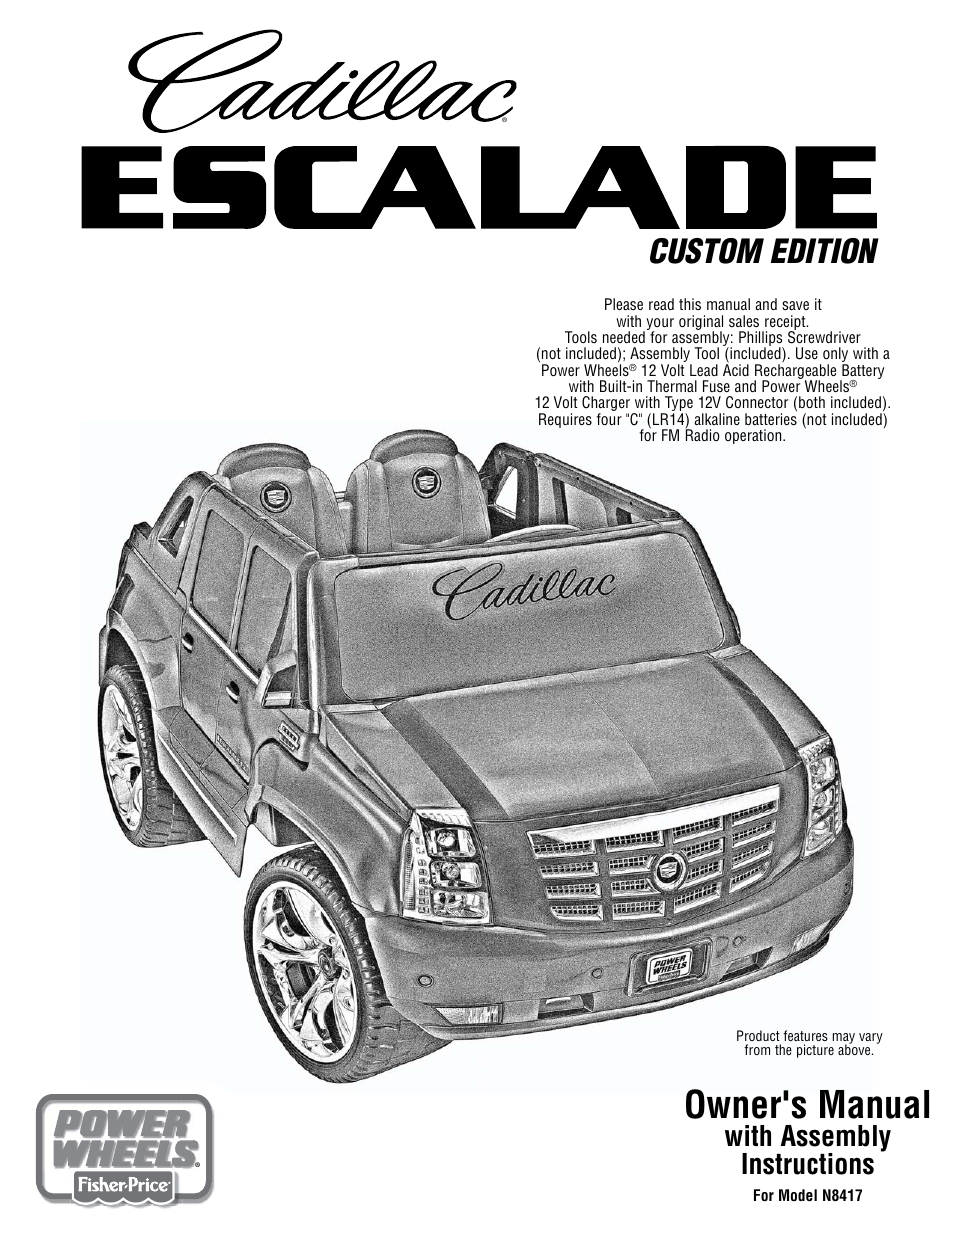 fisher price cadillac escalade custom edition power wheels n8417 user manual 32 pages fisher price cadillac escalade custom